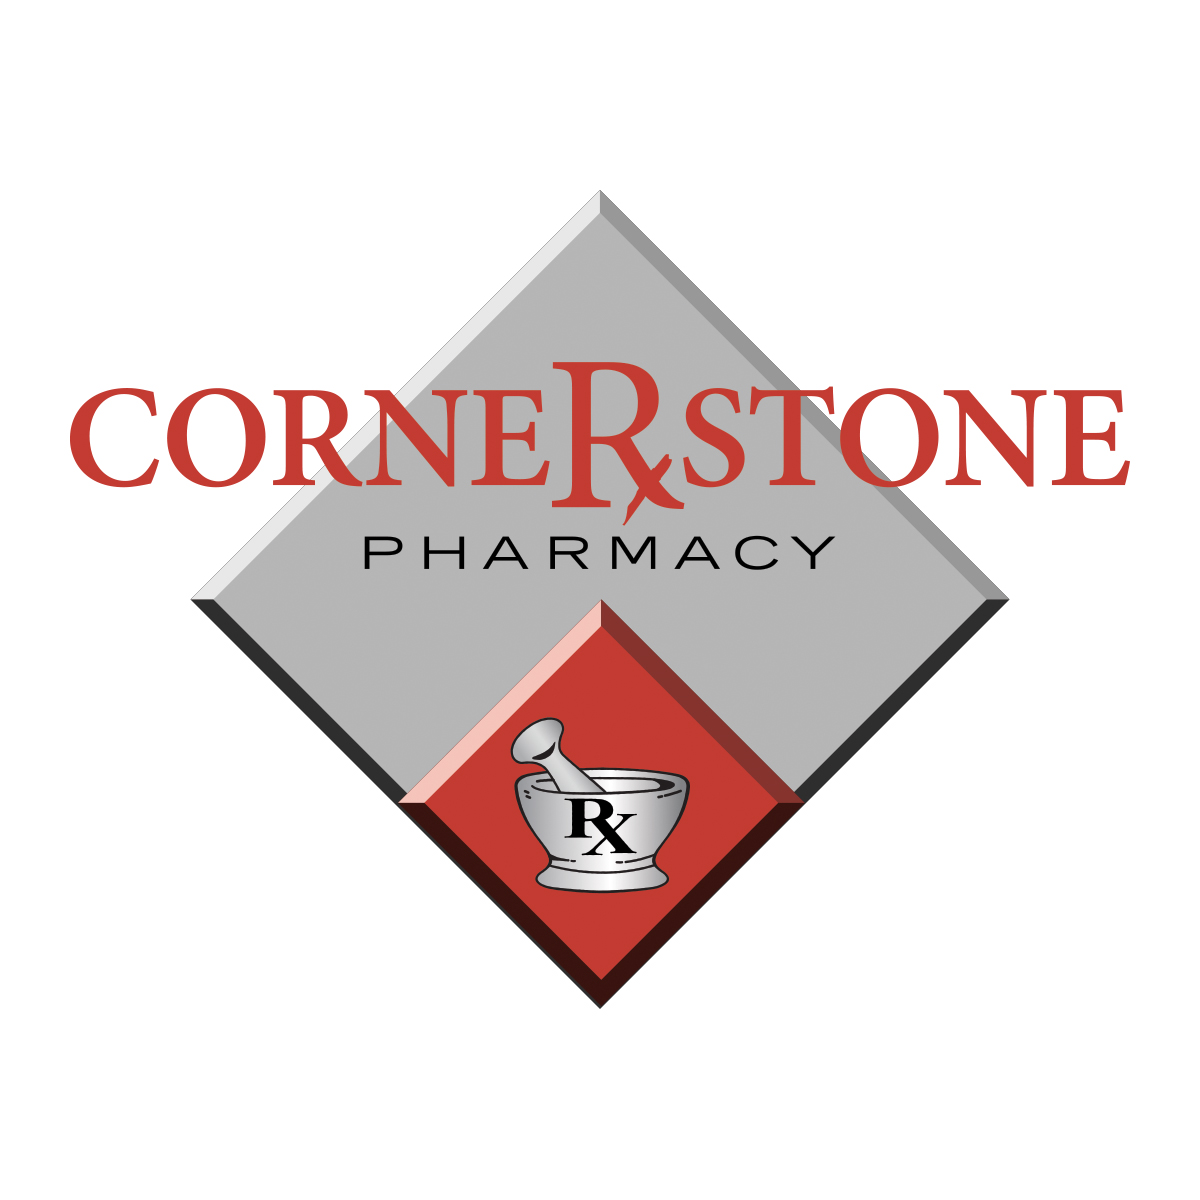 cornerstone-pharmacy-logo